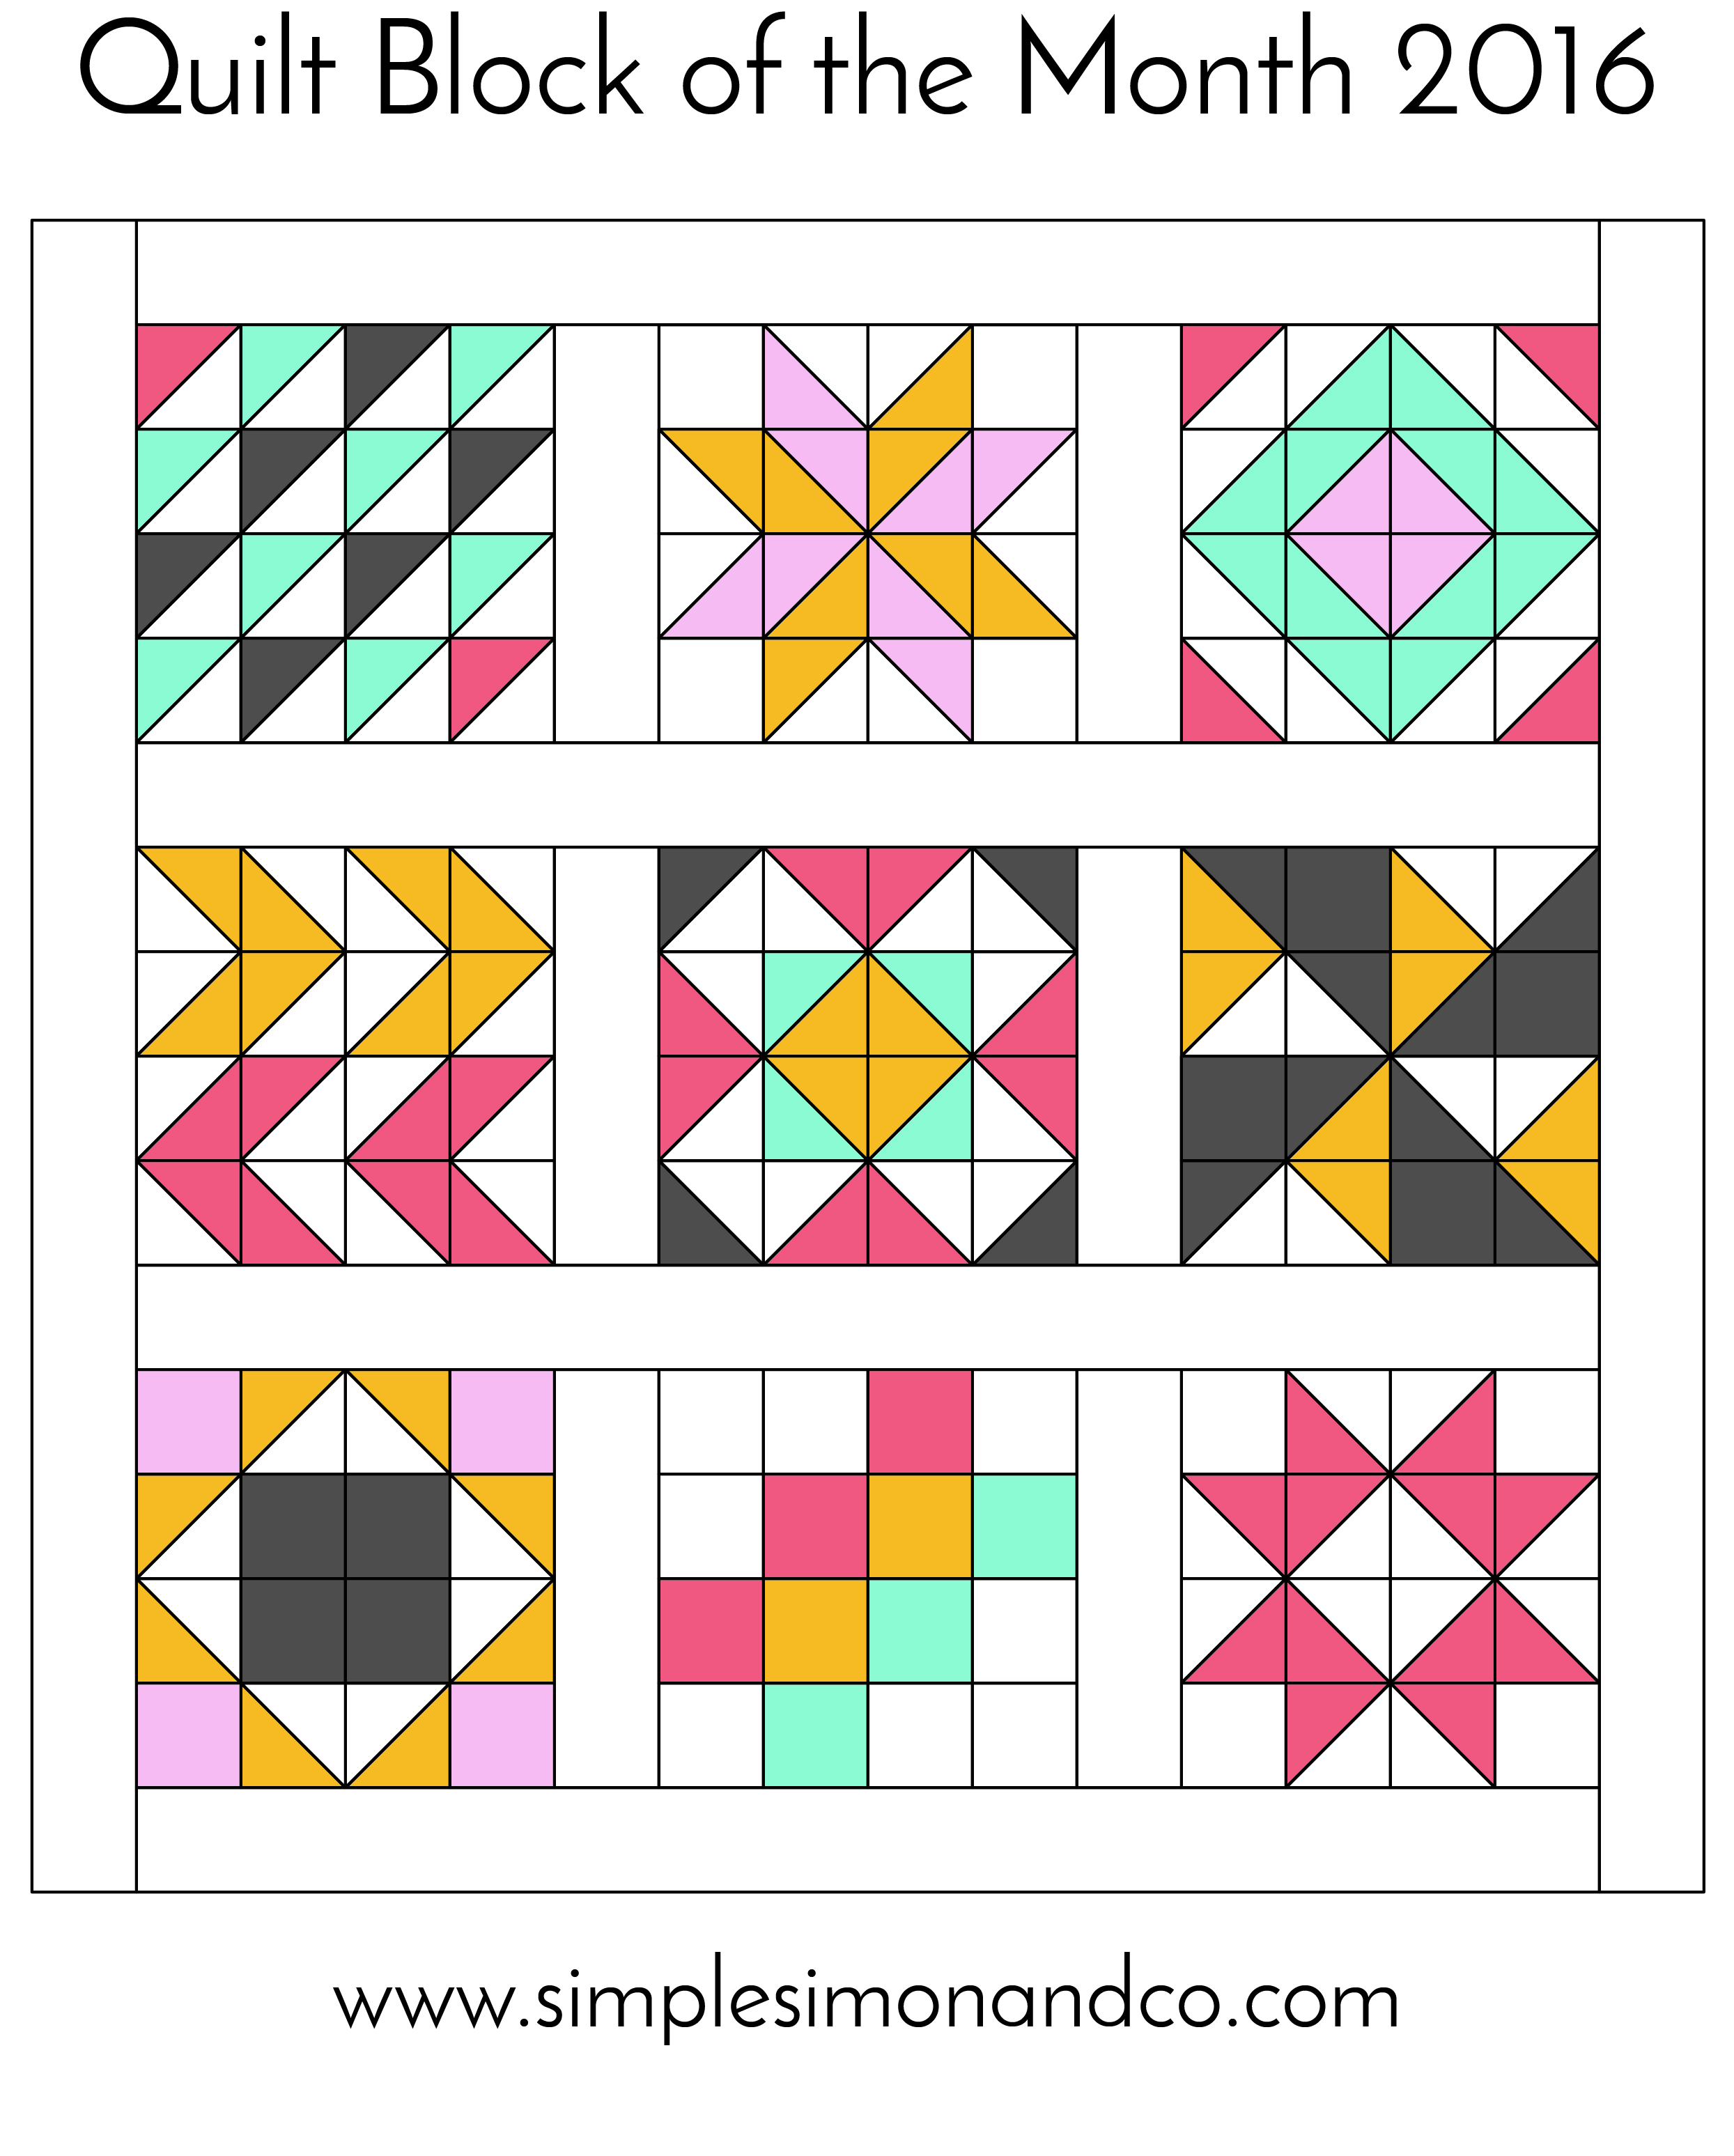 Quilt Block of the Month-The Flying Geese Block - Simple